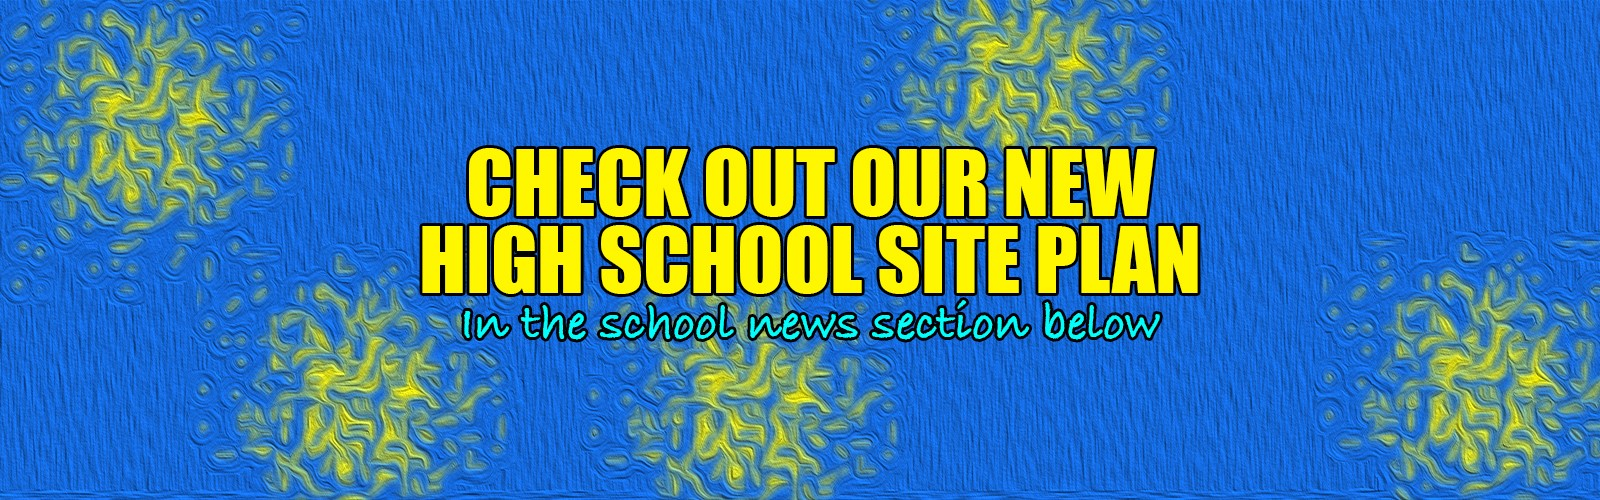 "Go to the ""school news"" section bottom left below to check out the new High School site plan and layout"